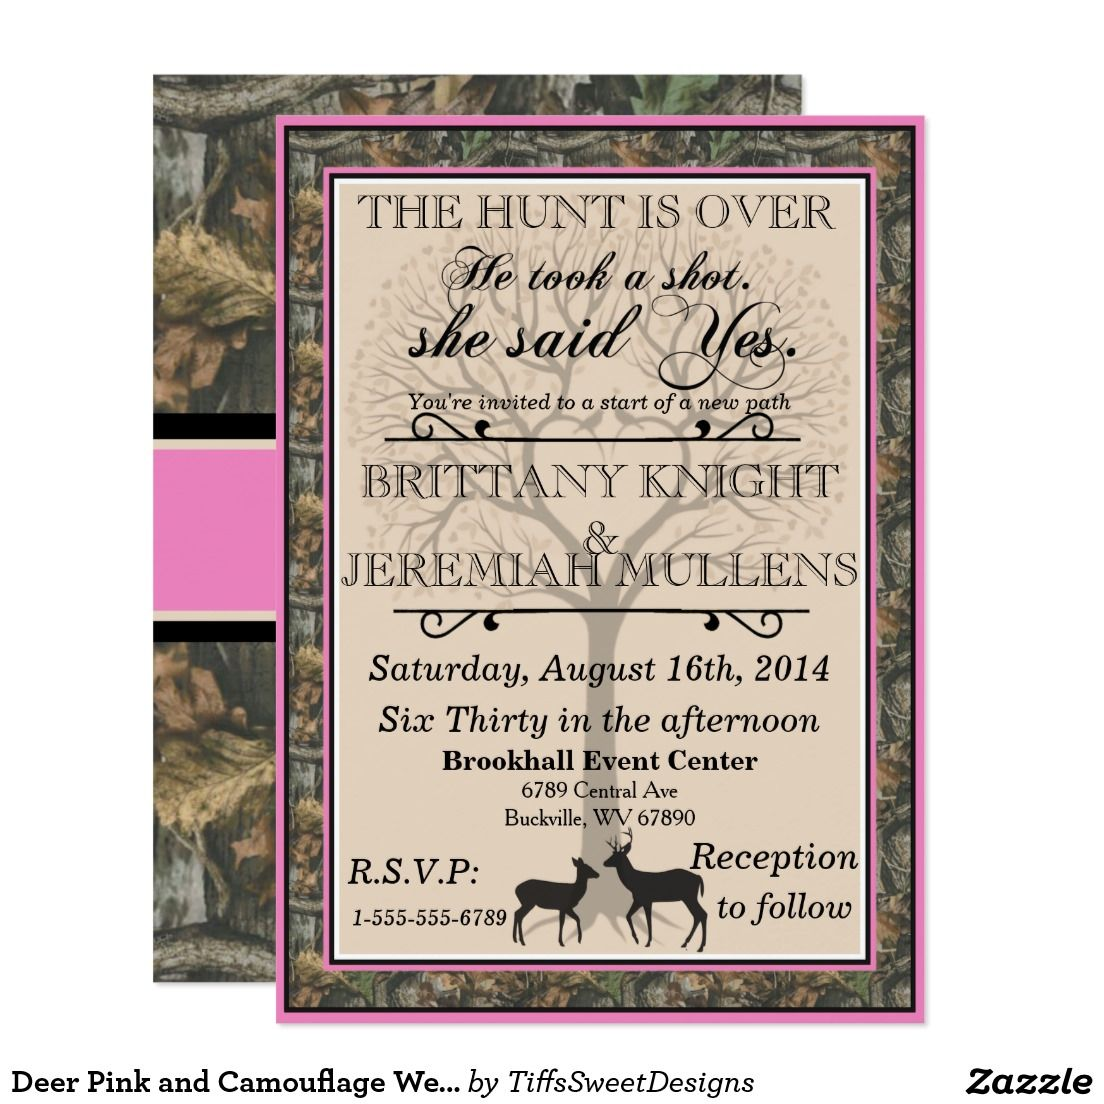 Camo Wedding Invitation: Deer Pink And Camouflage Wedding Invitation